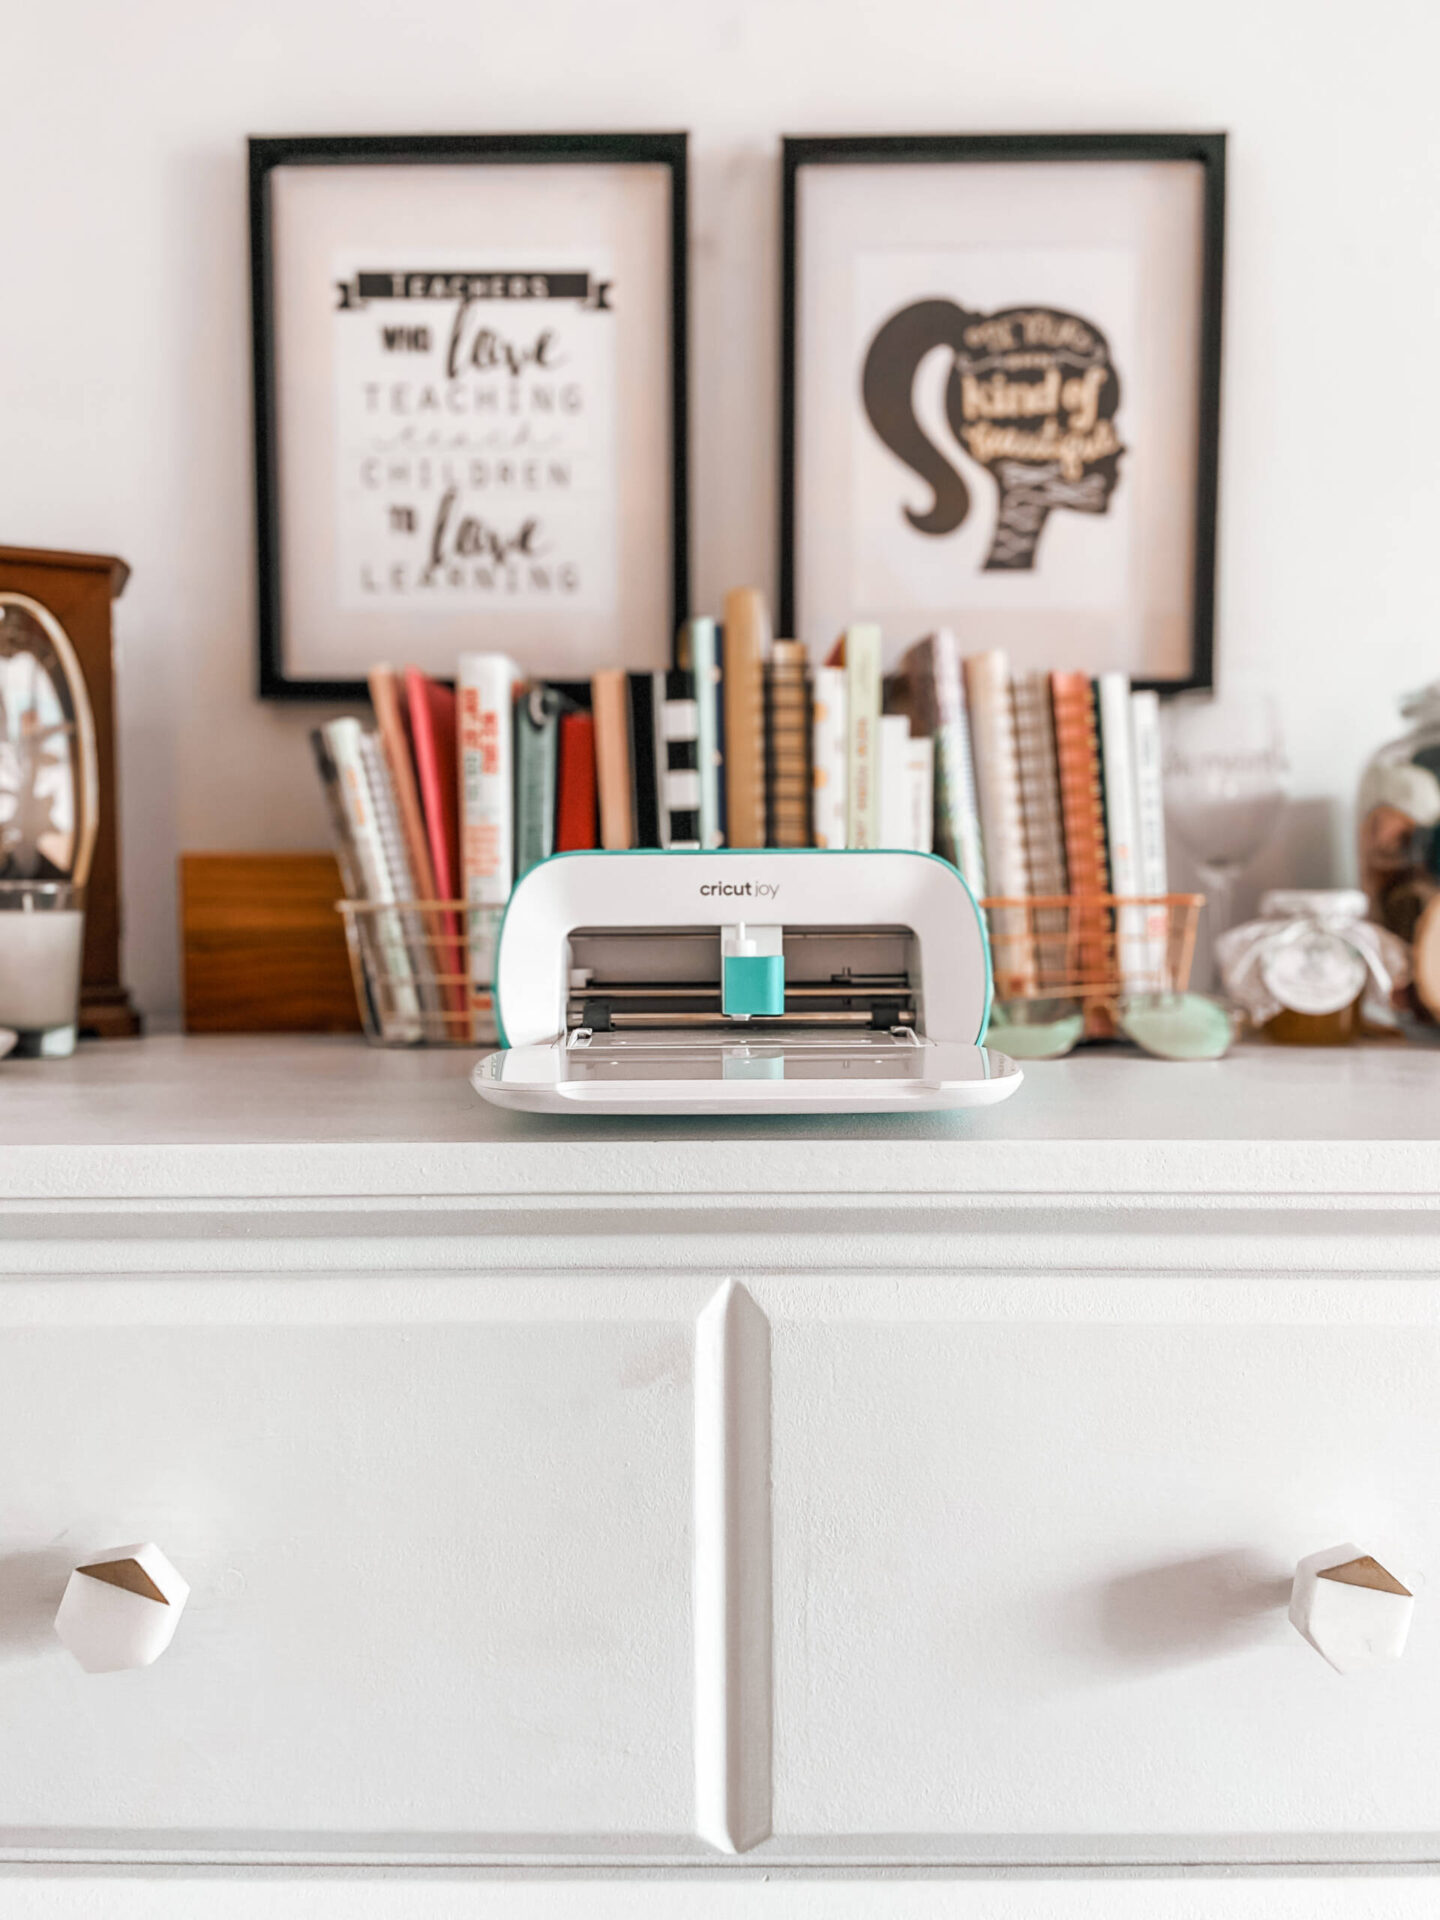 3 LITTLE PROJECTS TO MAKE WITH THE CRICUT JOY